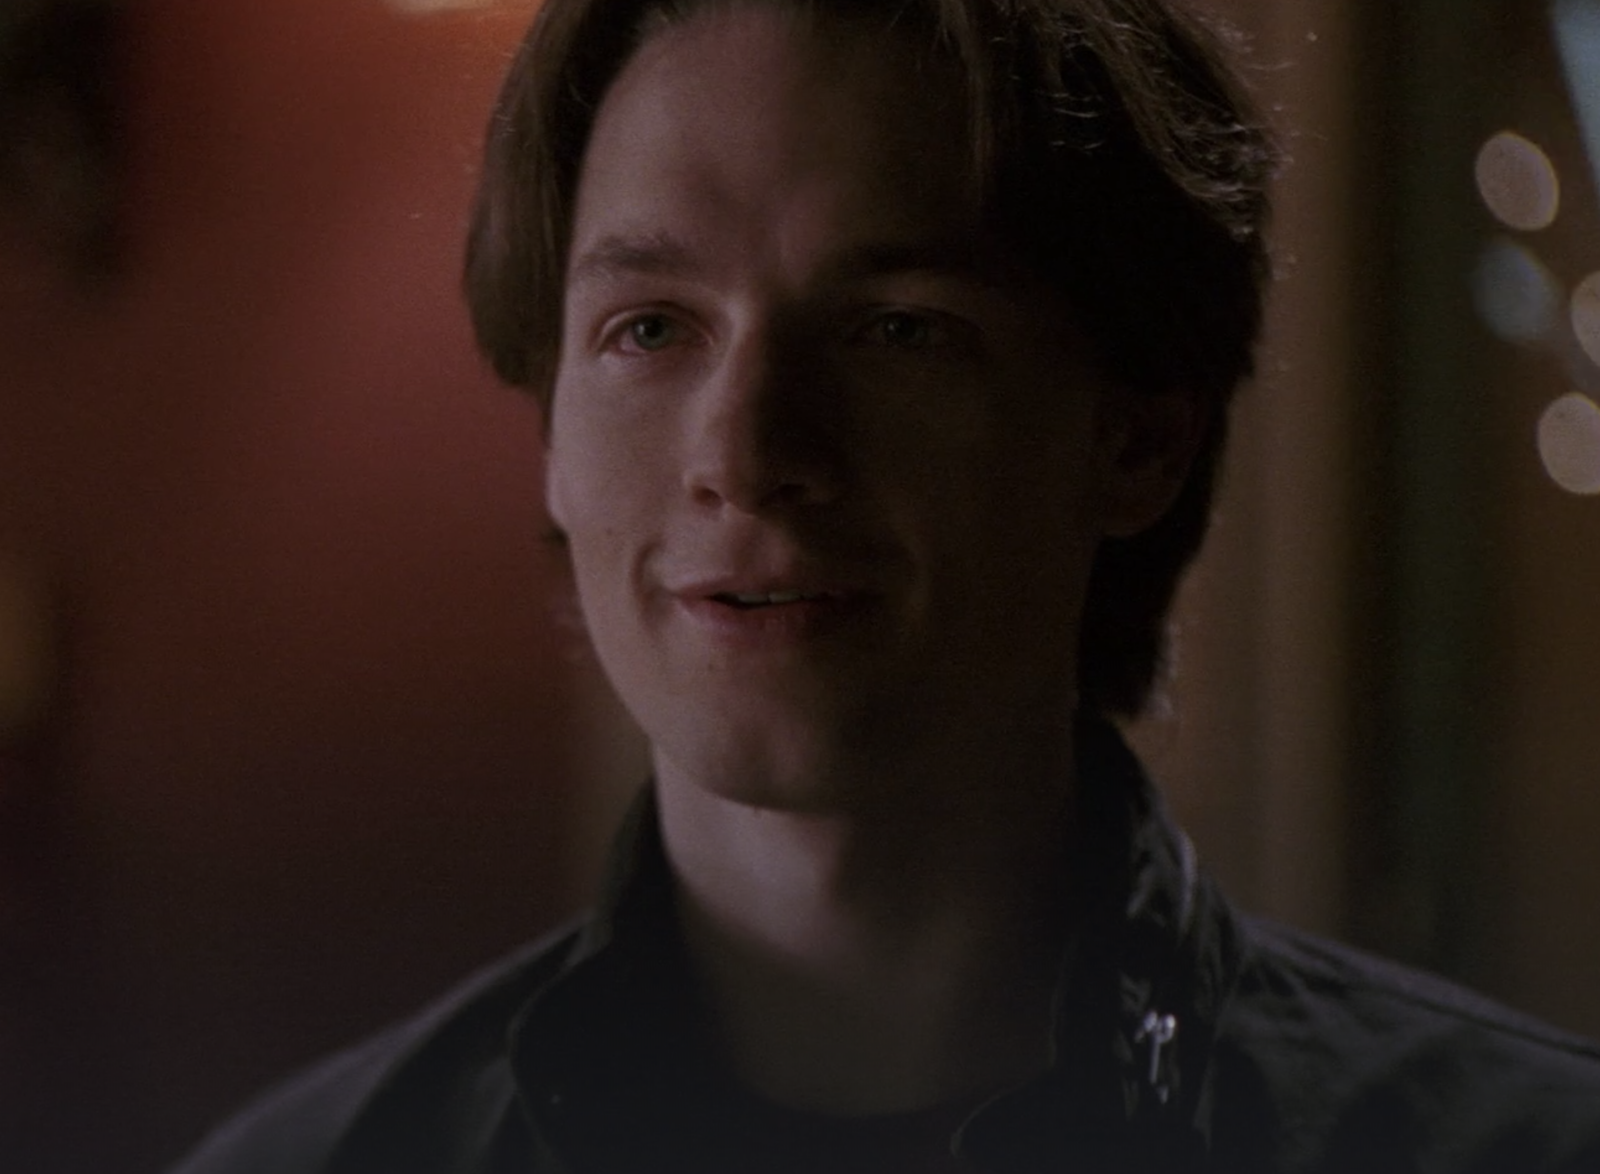 Everwood  almost ended with Ephram getting a phone call from his ex-girlfriend Madison and  never reuniting with Amy at the Ferris wheel . -  The series was cancelled after the Season 4 finale, so this ending would've been an insane cliffhanger.